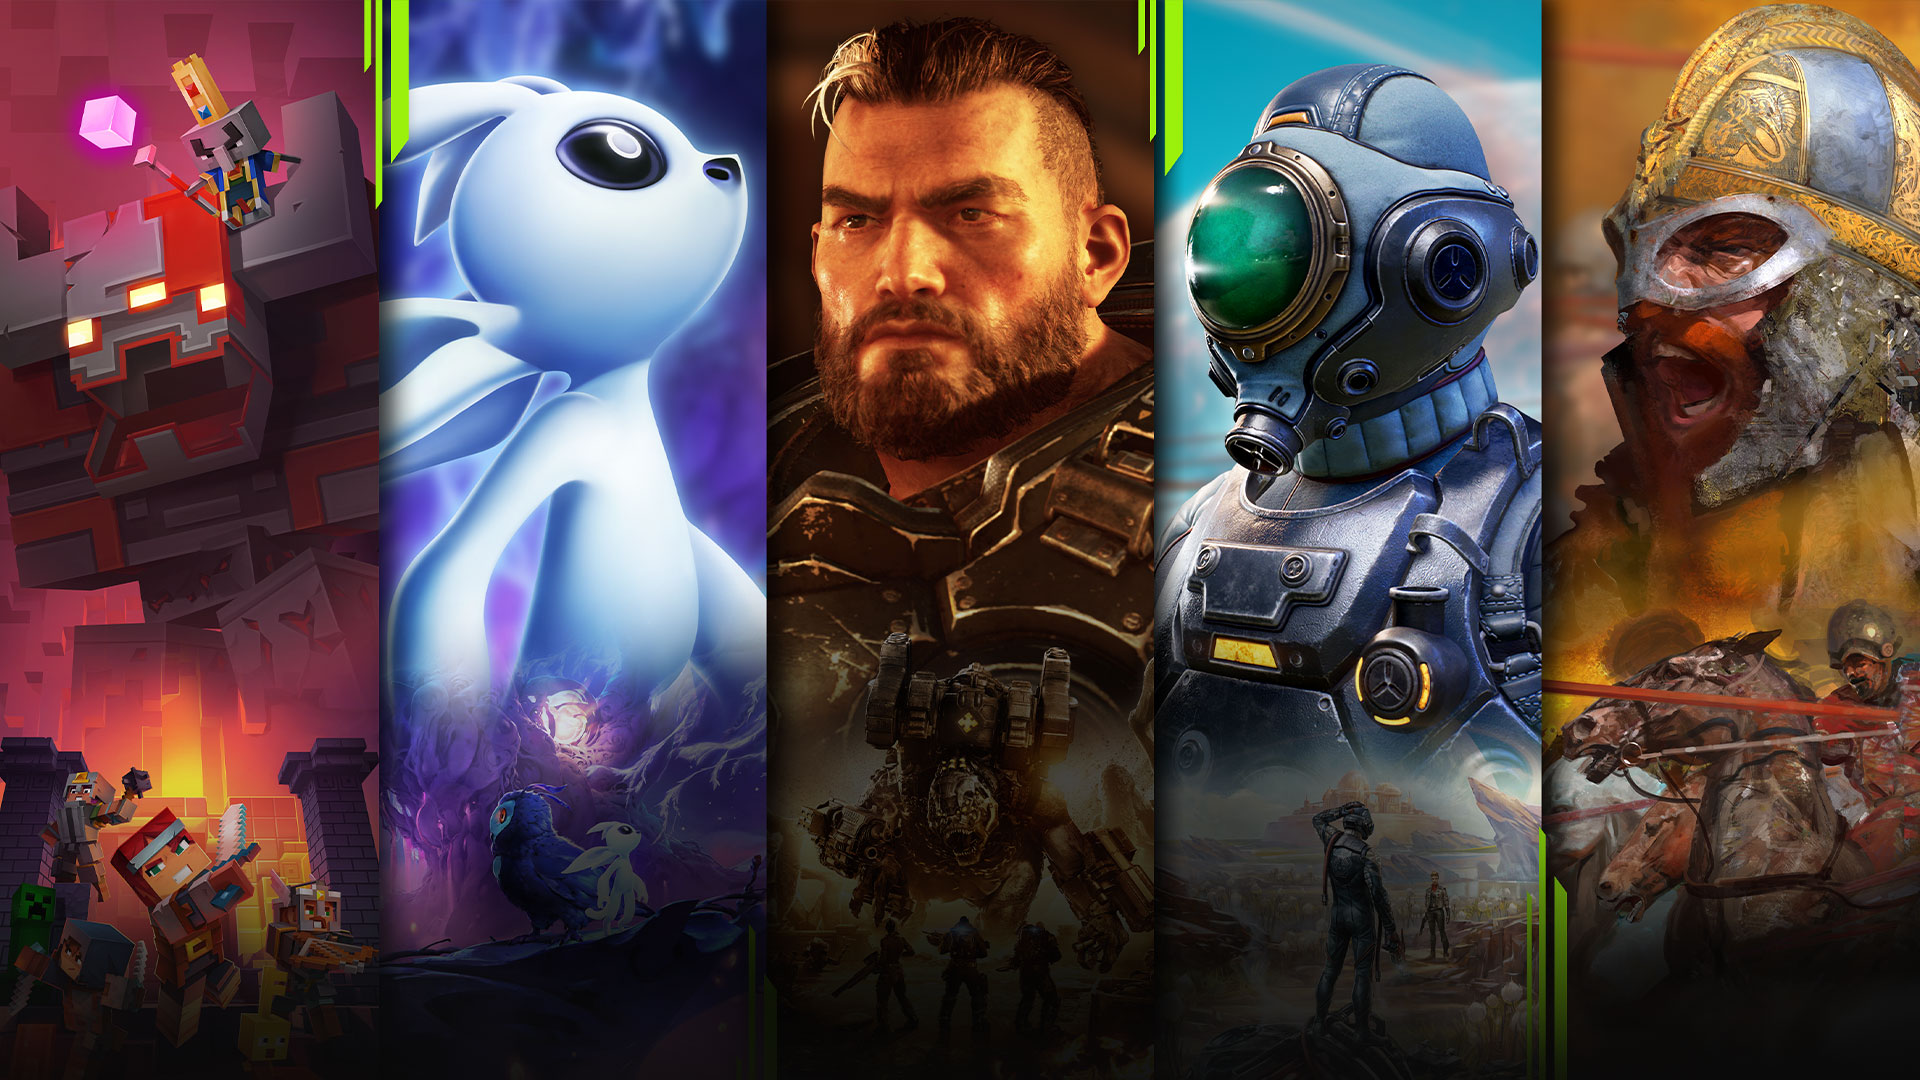 Kuvitusta useista peleistä, jotka ovat saatavana Xbox Game Pass PC:lle -tilauksella, mukaan lukien Minecraft Dungeons, Ori and the Will of the Wisps, Gears Tactics, The Outer Worlds ja Age of Empires 2: Definitive Edition.